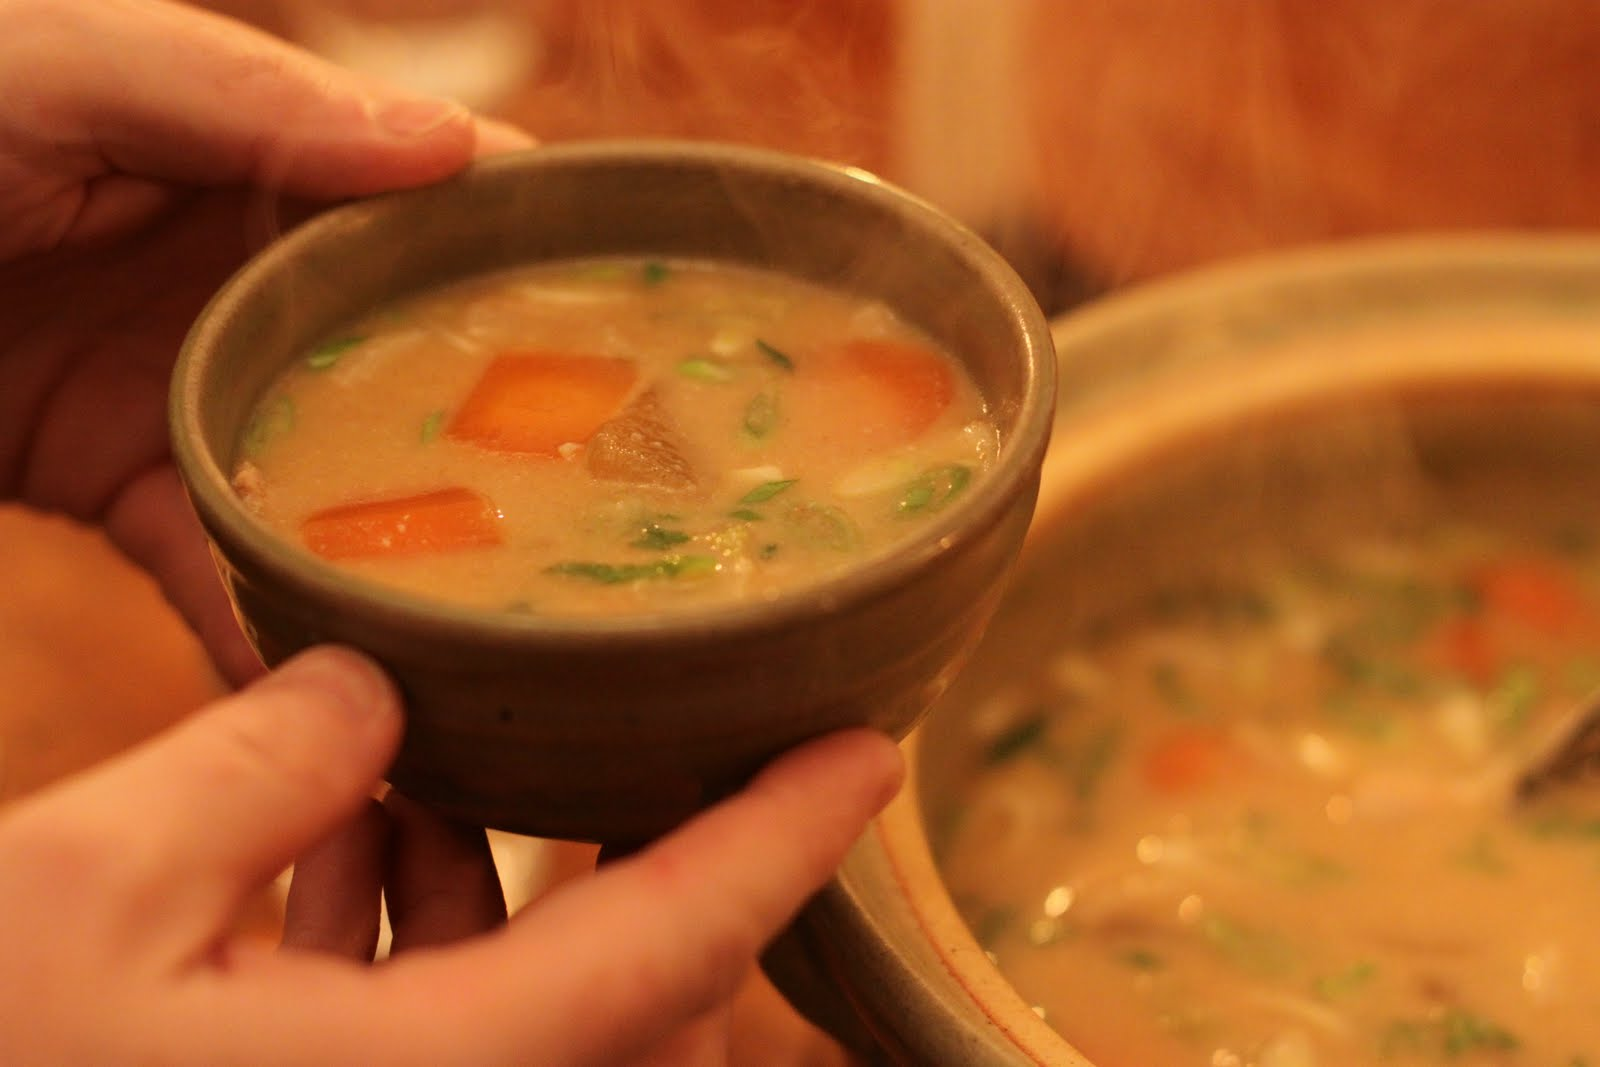 The London Foodie: Tonjiru Soup – Hearty Japanese Miso ...